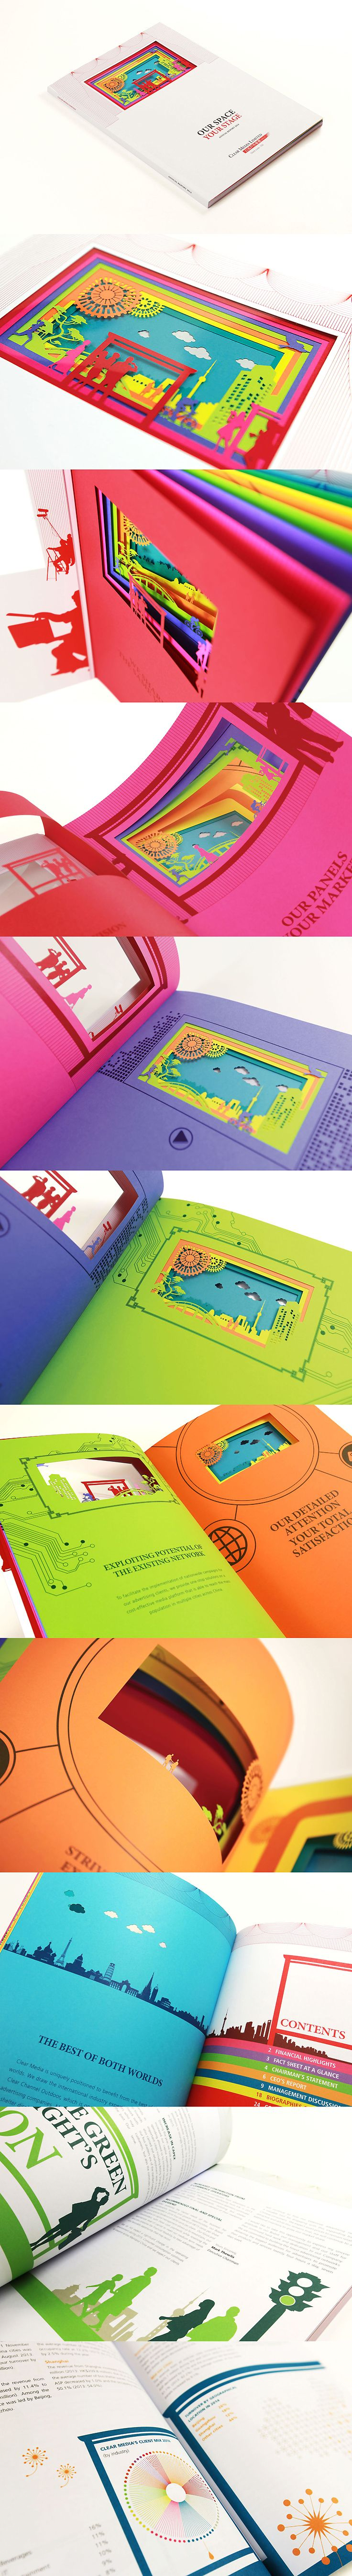 "A ""Real"" Advertising Panel on Book The Outstanding Annual Report by Phoenix Communications. Taylor-made to bring out client's business in advertising panels, design is themed ""Our Space Your Stage"". Acrylic film is inserted on cover by special printing procedures, colorful inside pages with laser cut images are designed. Each highlights different message, but the pages also combine as one, forming a beautiful stage (advertising panel) when the book is closed."